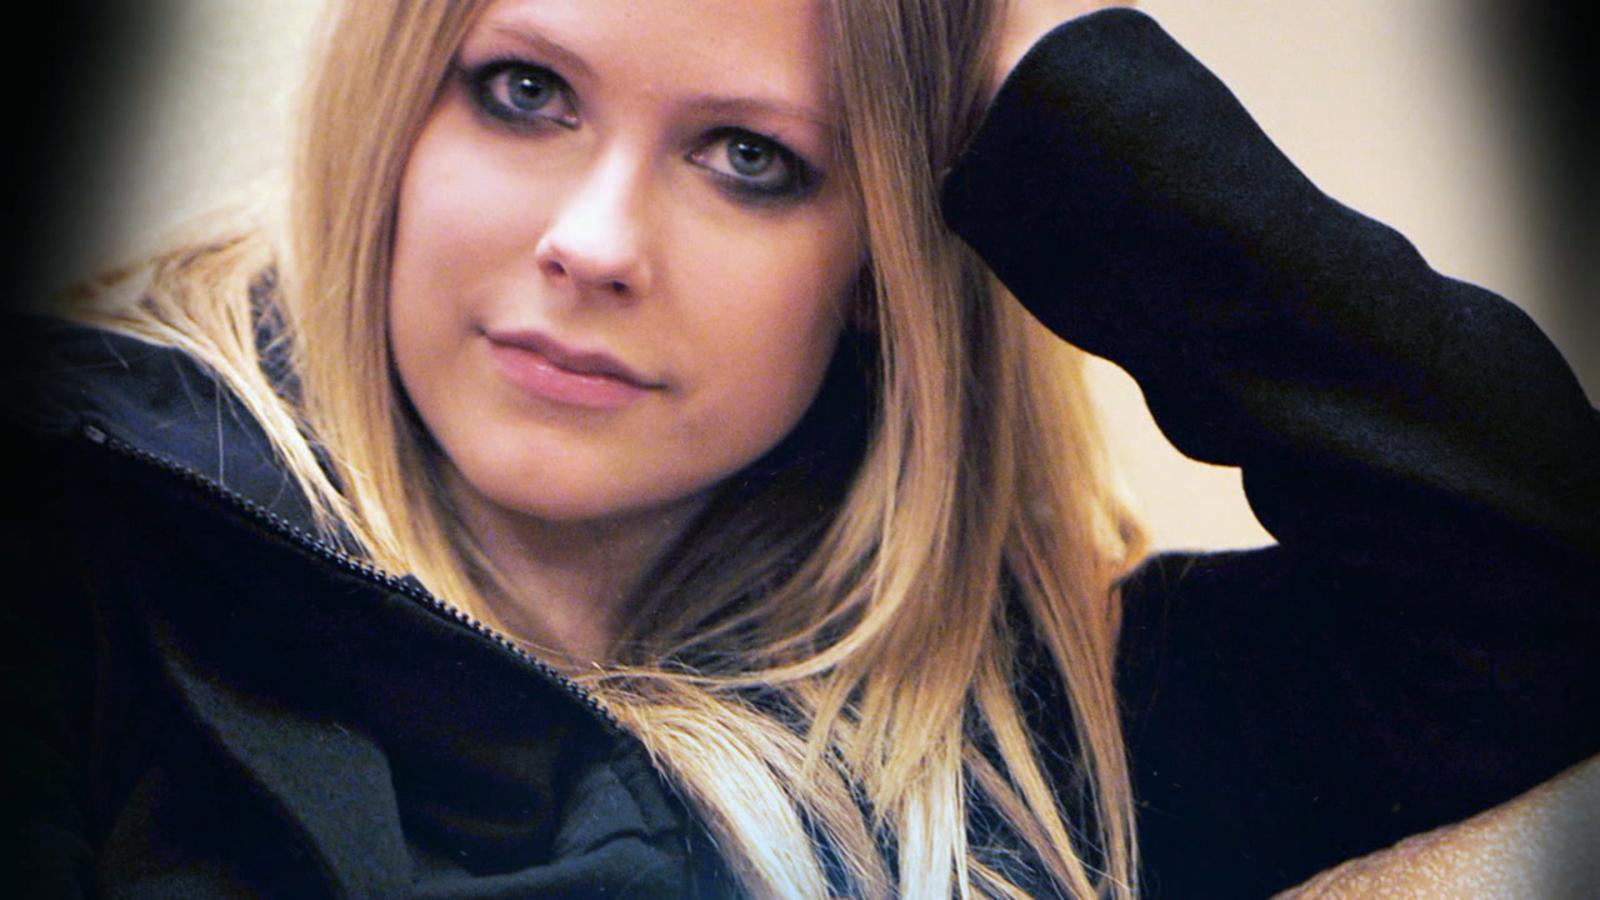 VIDEO: Avril Lavigne on How Lyme Disease Has Affected Her Life, Career